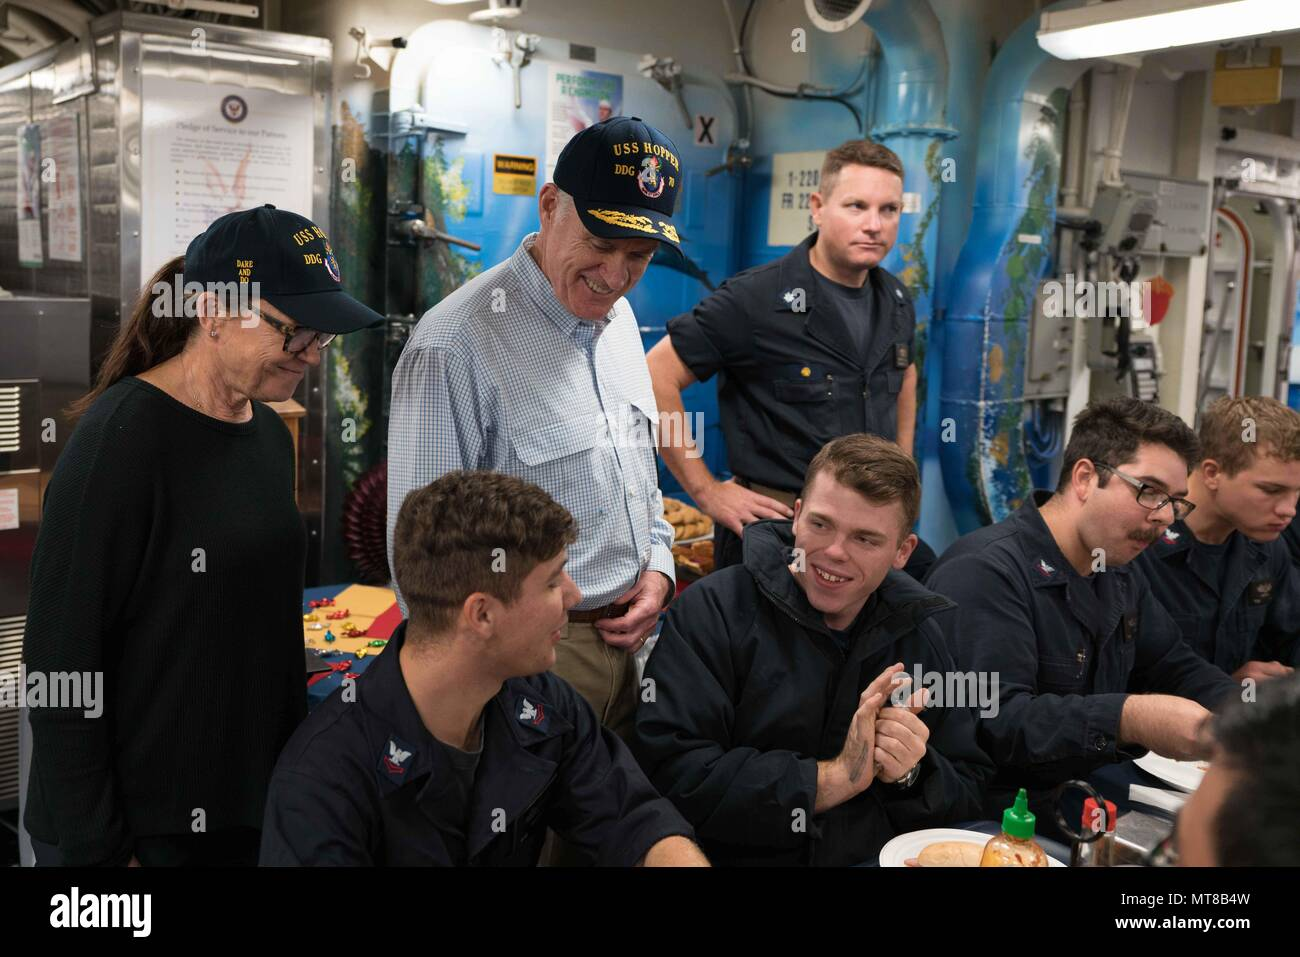 ARABIAN GULF (Nov. 23, 2017) Secretary of the Navy (SECNAV) Richard V. Spencer (center), and his wife, Sarah Pauline Spencer, meet with crewmembers of the Arleigh Burke-class guided-missile destroyer USS Hopper (DDG 70) on the ship's mess decks during the SECNAV's visit to the ship on Thanksgiving Day. Hopper is deployed to the U.S. 5th Fleet area of operations in support of maritime security operations to reassure allies and partners and preserve the freedom of navigation and the free flow of commerce in the region. (U.S. Navy photo by Fire Controlman 2nd Class Jonathan Clegg/Released) - Stock Image